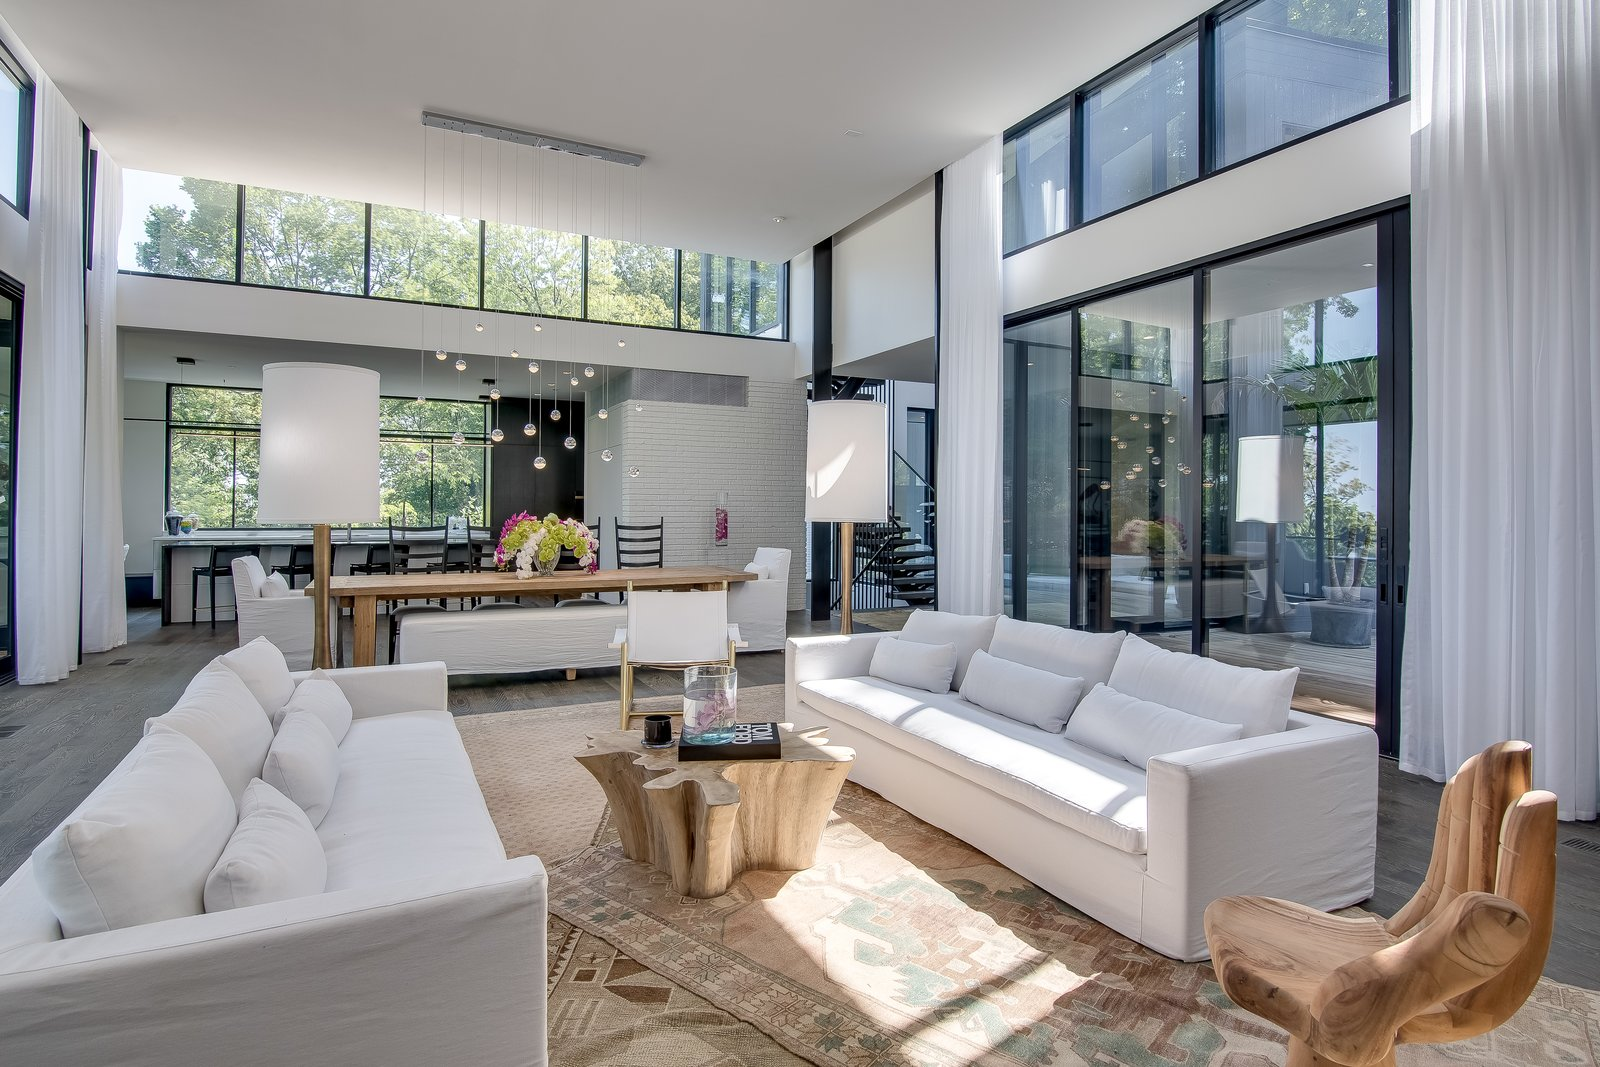 Living Room, Sofa, Pendant Lighting, Dark Hardwood Floor, Console Tables, and Chair  Modern View